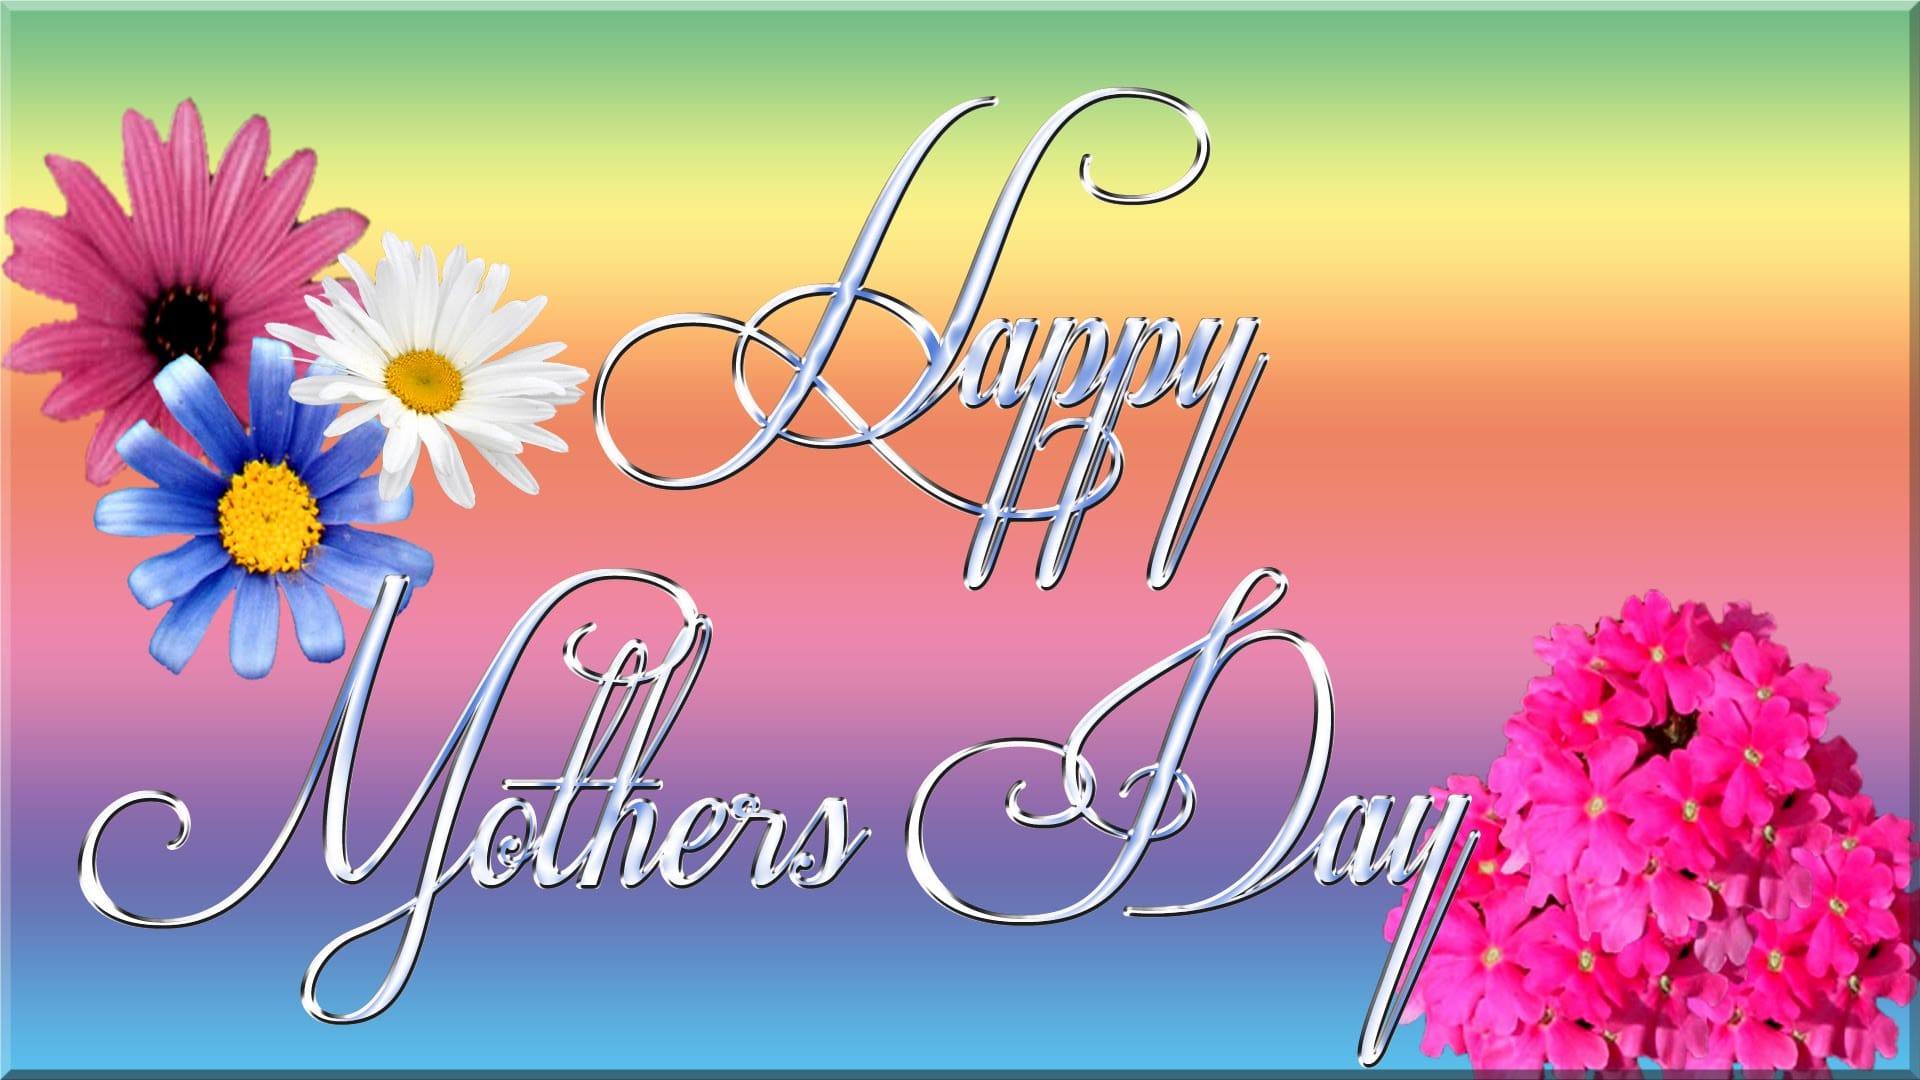 Mothers day text messages free hd images mothers day message m4hsunfo